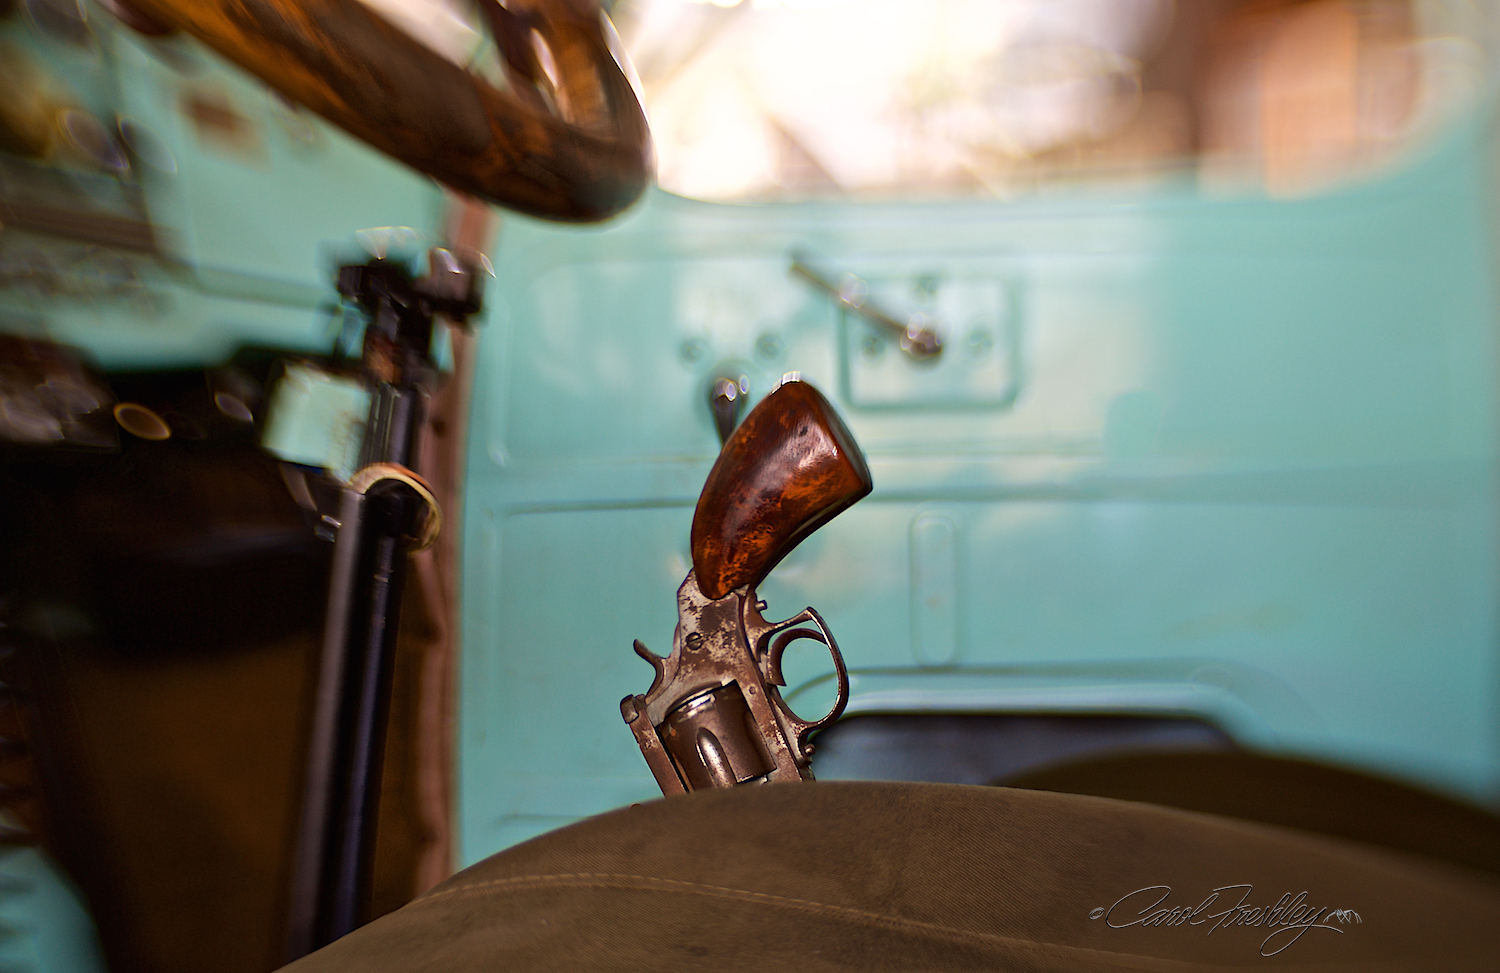 Pistol for the brake, double barrel for the stick shift and a gorgeous custom interior and wood steering wheel!